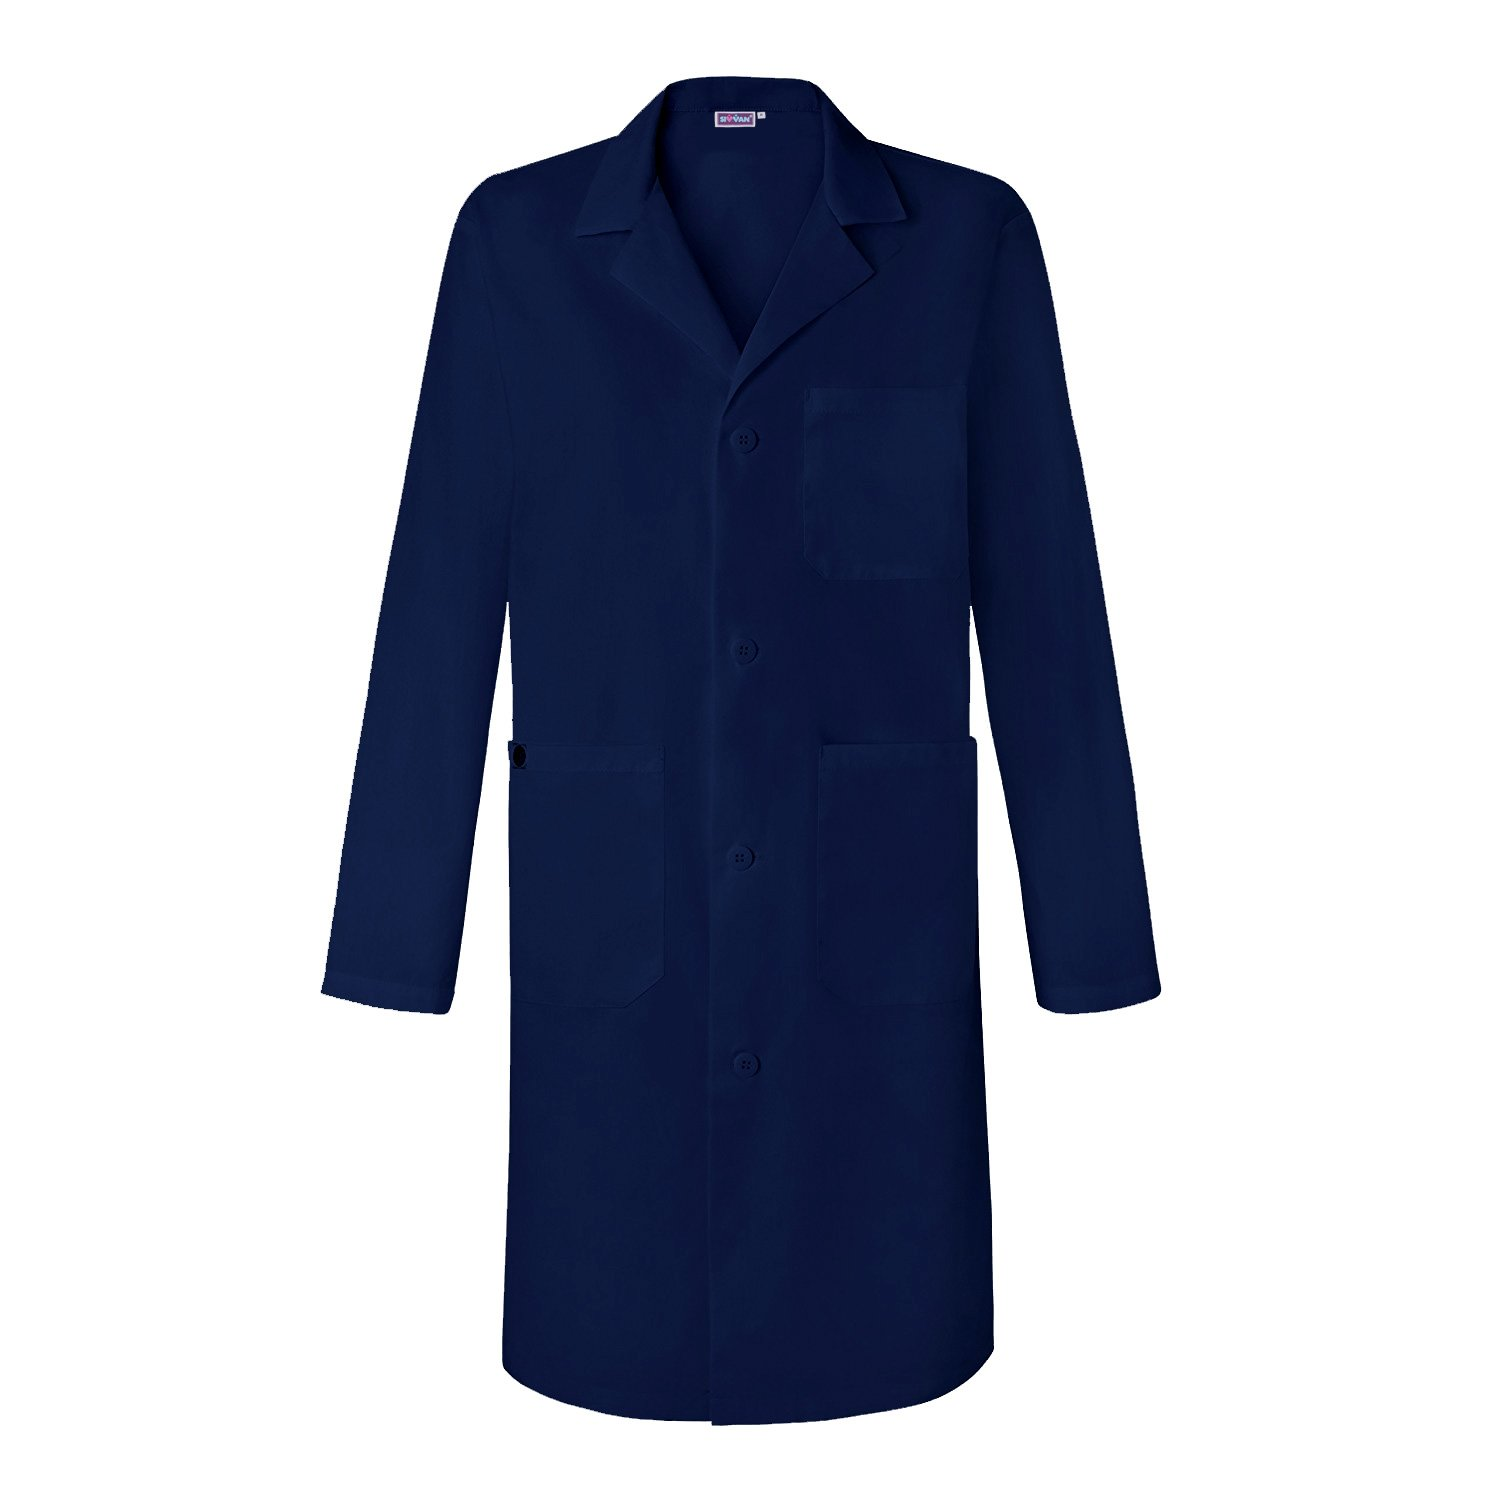 Sivvan Unisex 39 Inch Lab Coat - Back Pleated - S8802 - Navy - L by Sivvan (Image #1)